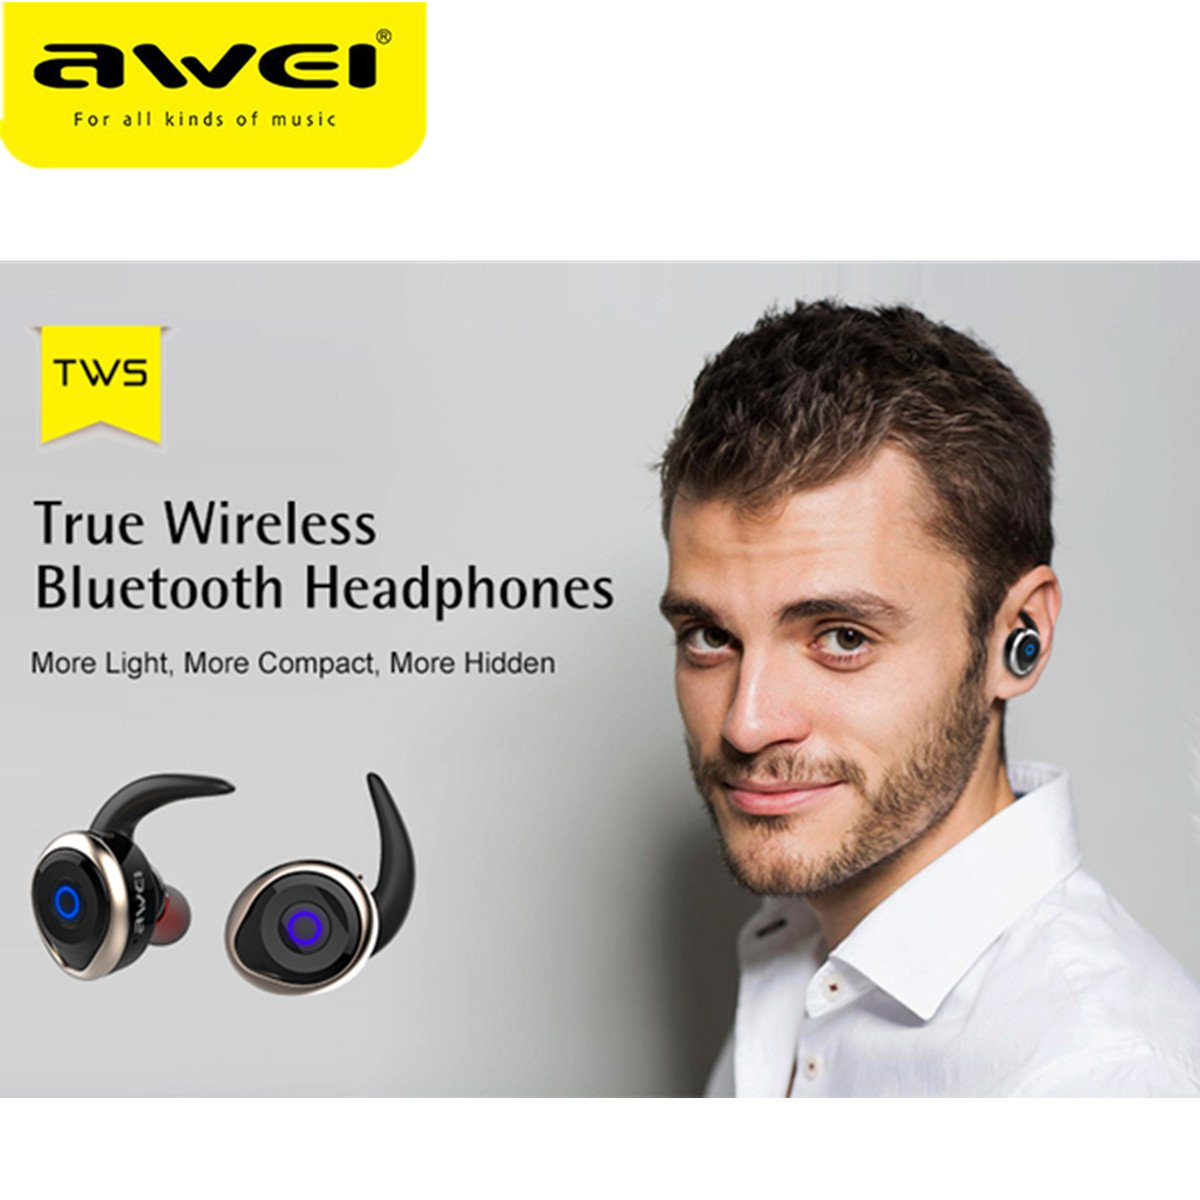 Awei T1 Single/Pairs Ture Wireless Get Rid Of Wire Binding earbuds, One Button Operation Bluetooth V4.2 Waterproof IPX4 Sport Headphones for Running Gym Exercise Hands-free Calling for iphone7(Gold) by AWEI (Image #4)